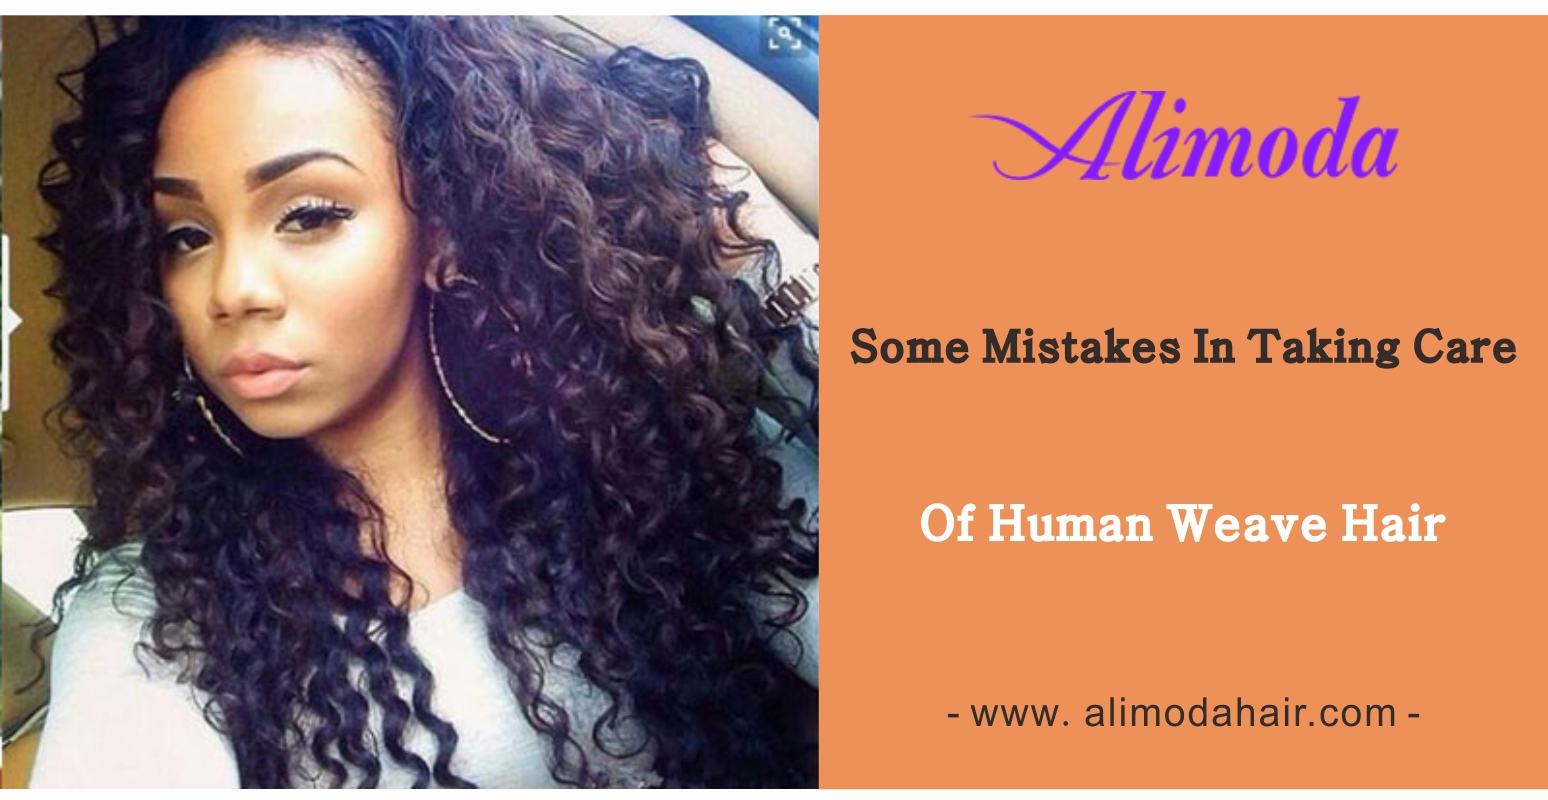 Some mistakes in taking care of human weave hair